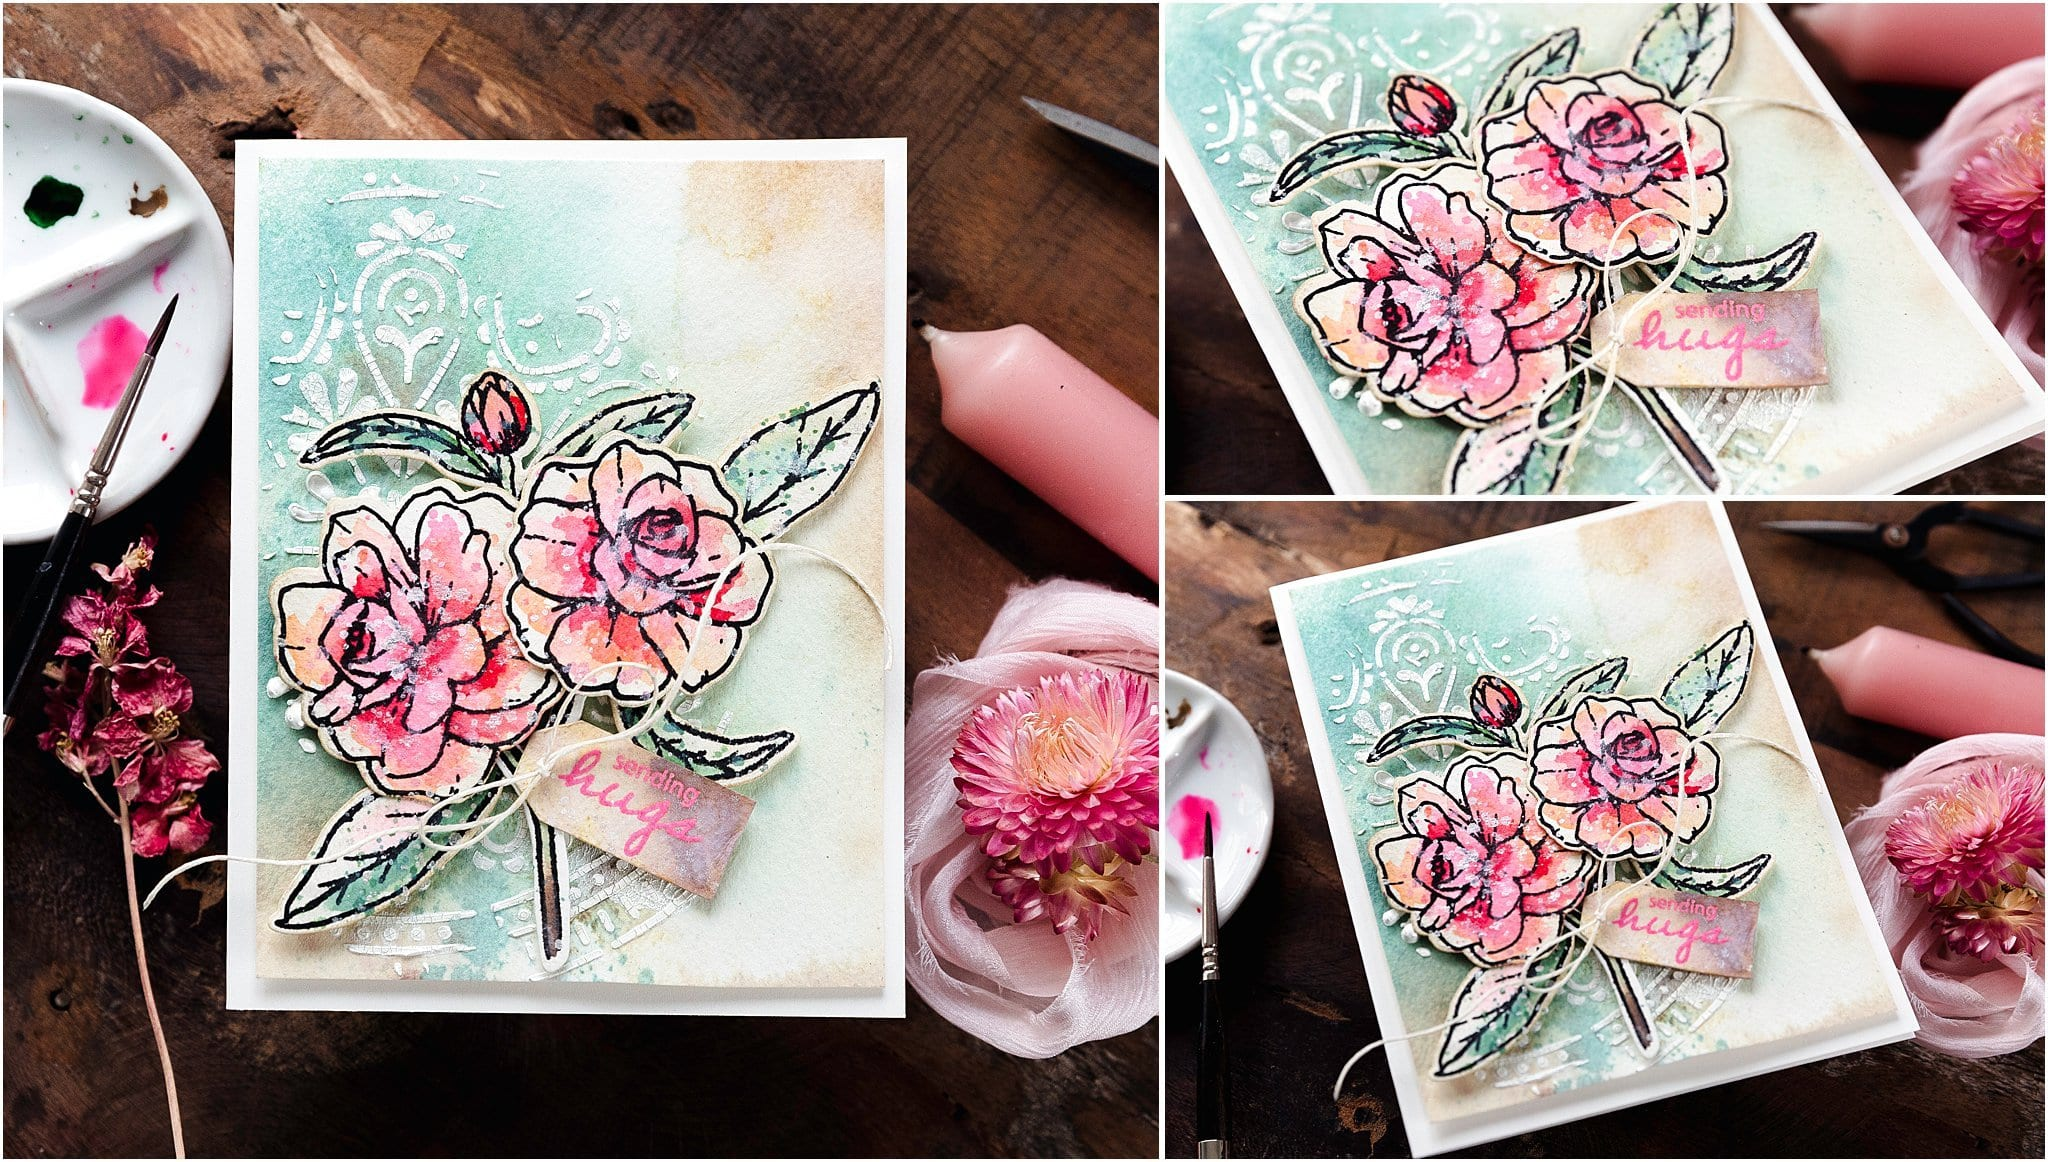 Video tutorial taking a first look at Tim Holtz's Kitsch Flamingo Distress colour. Handmade card by Debby Hughes #debbyhughes #limedoodledesign #handmadecards #cardmaking #cardmakingideas #cardmakingtechniques  #cardmakingtutorials #handmadecardideas #simonsaysstamp